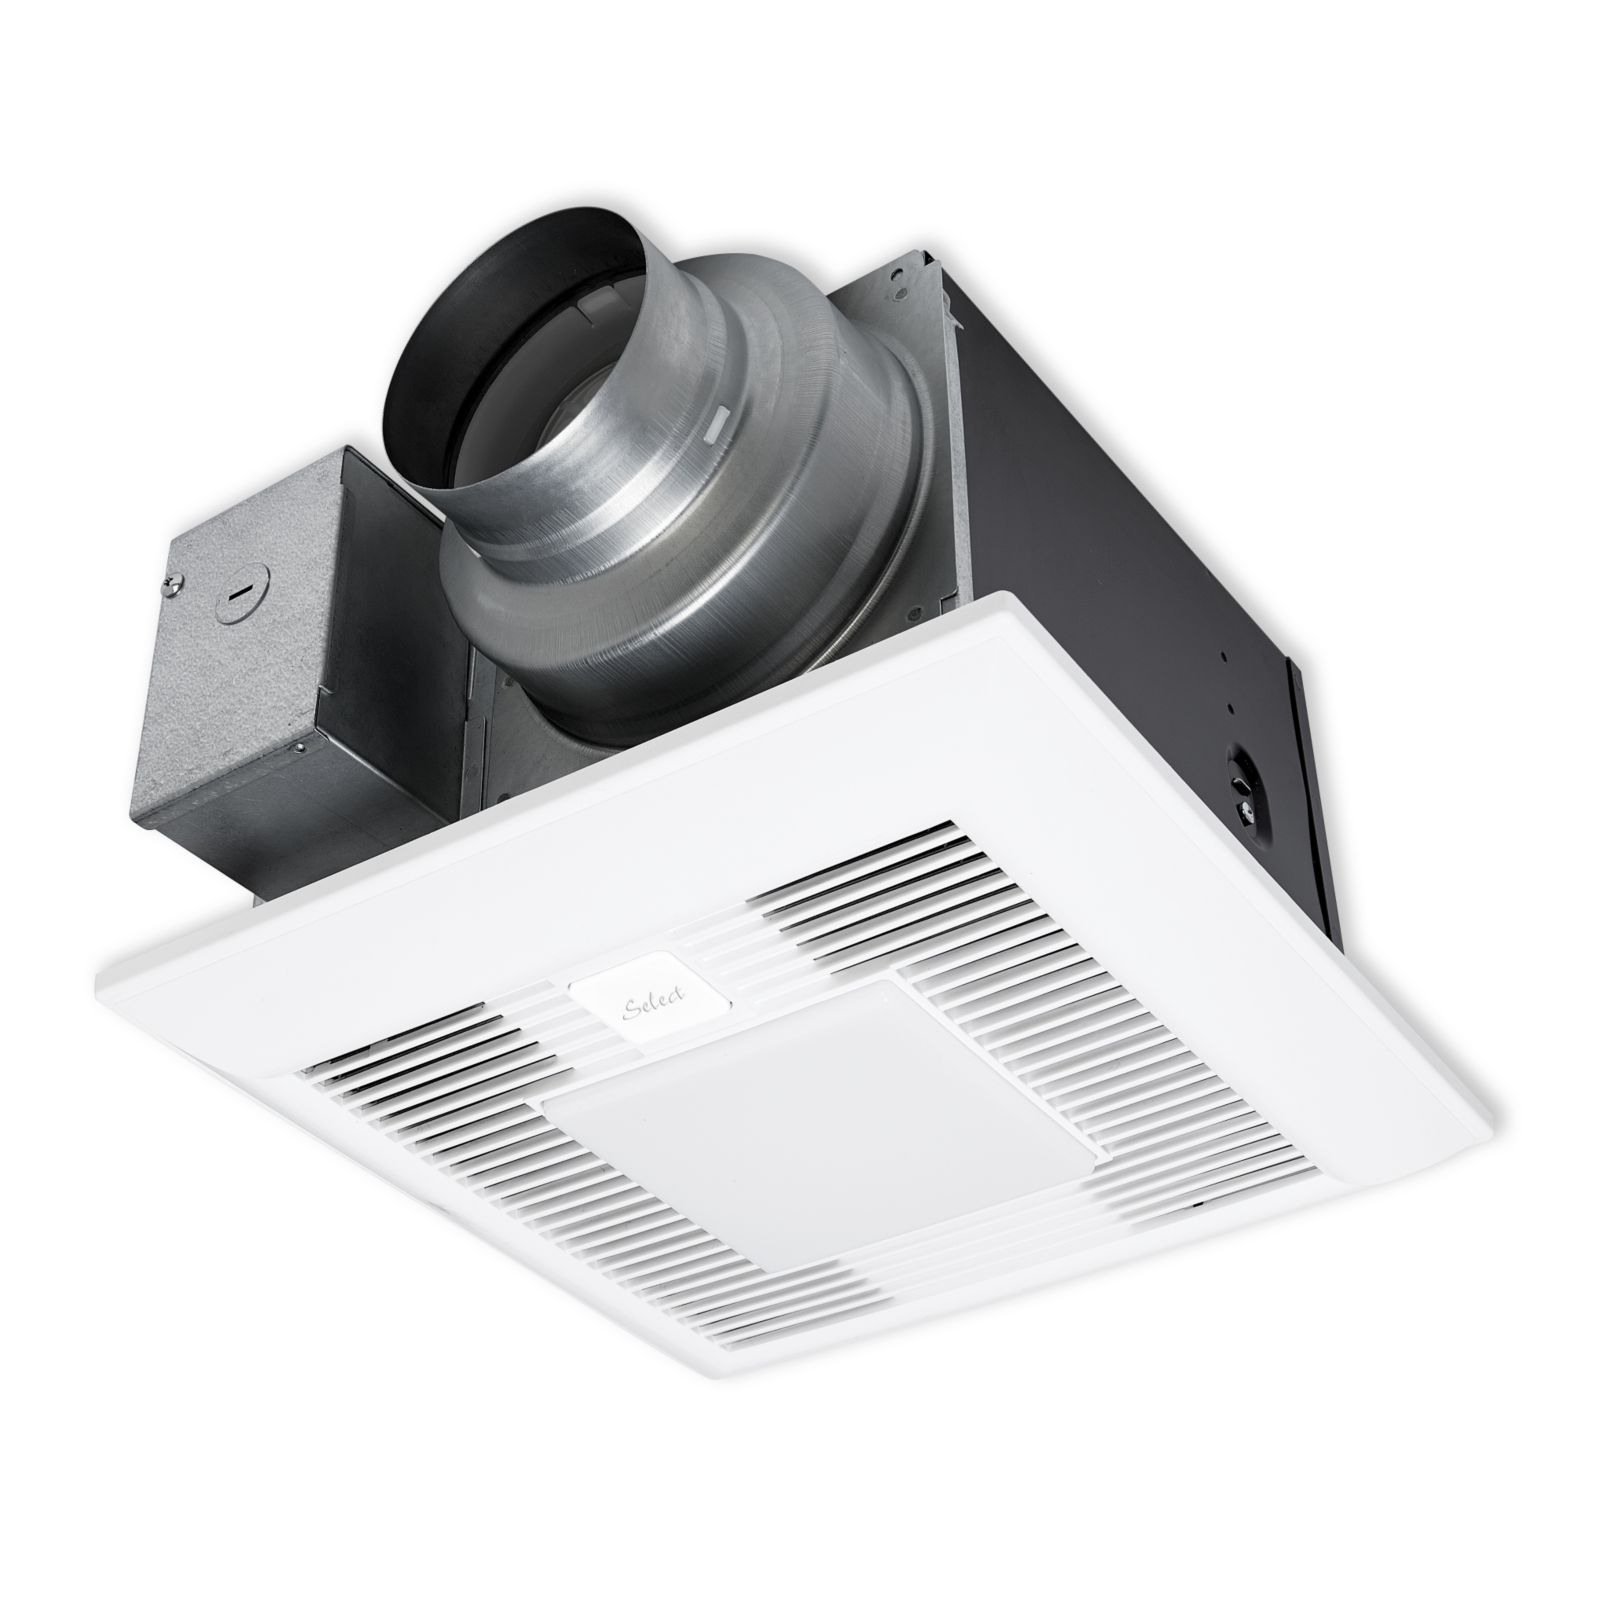 Panasonic FV-05-11VKL1 - WhisperGreen Select Ceiling Mount Fan, LED Light, Pick-A-Flow Speed Selector, 50, 80 or 110 CFM